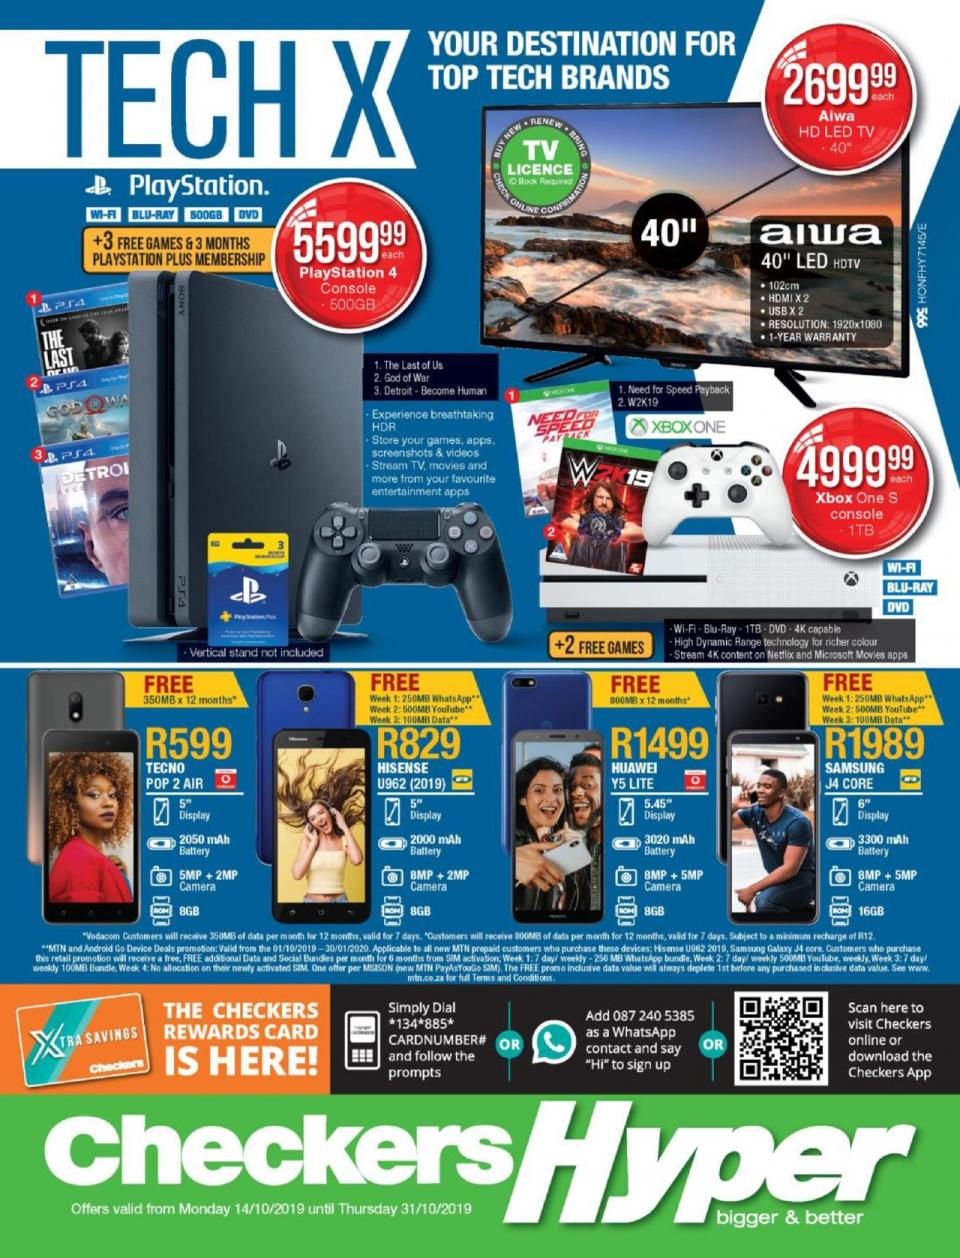 checkers specials tech x promotion 14 october 2019